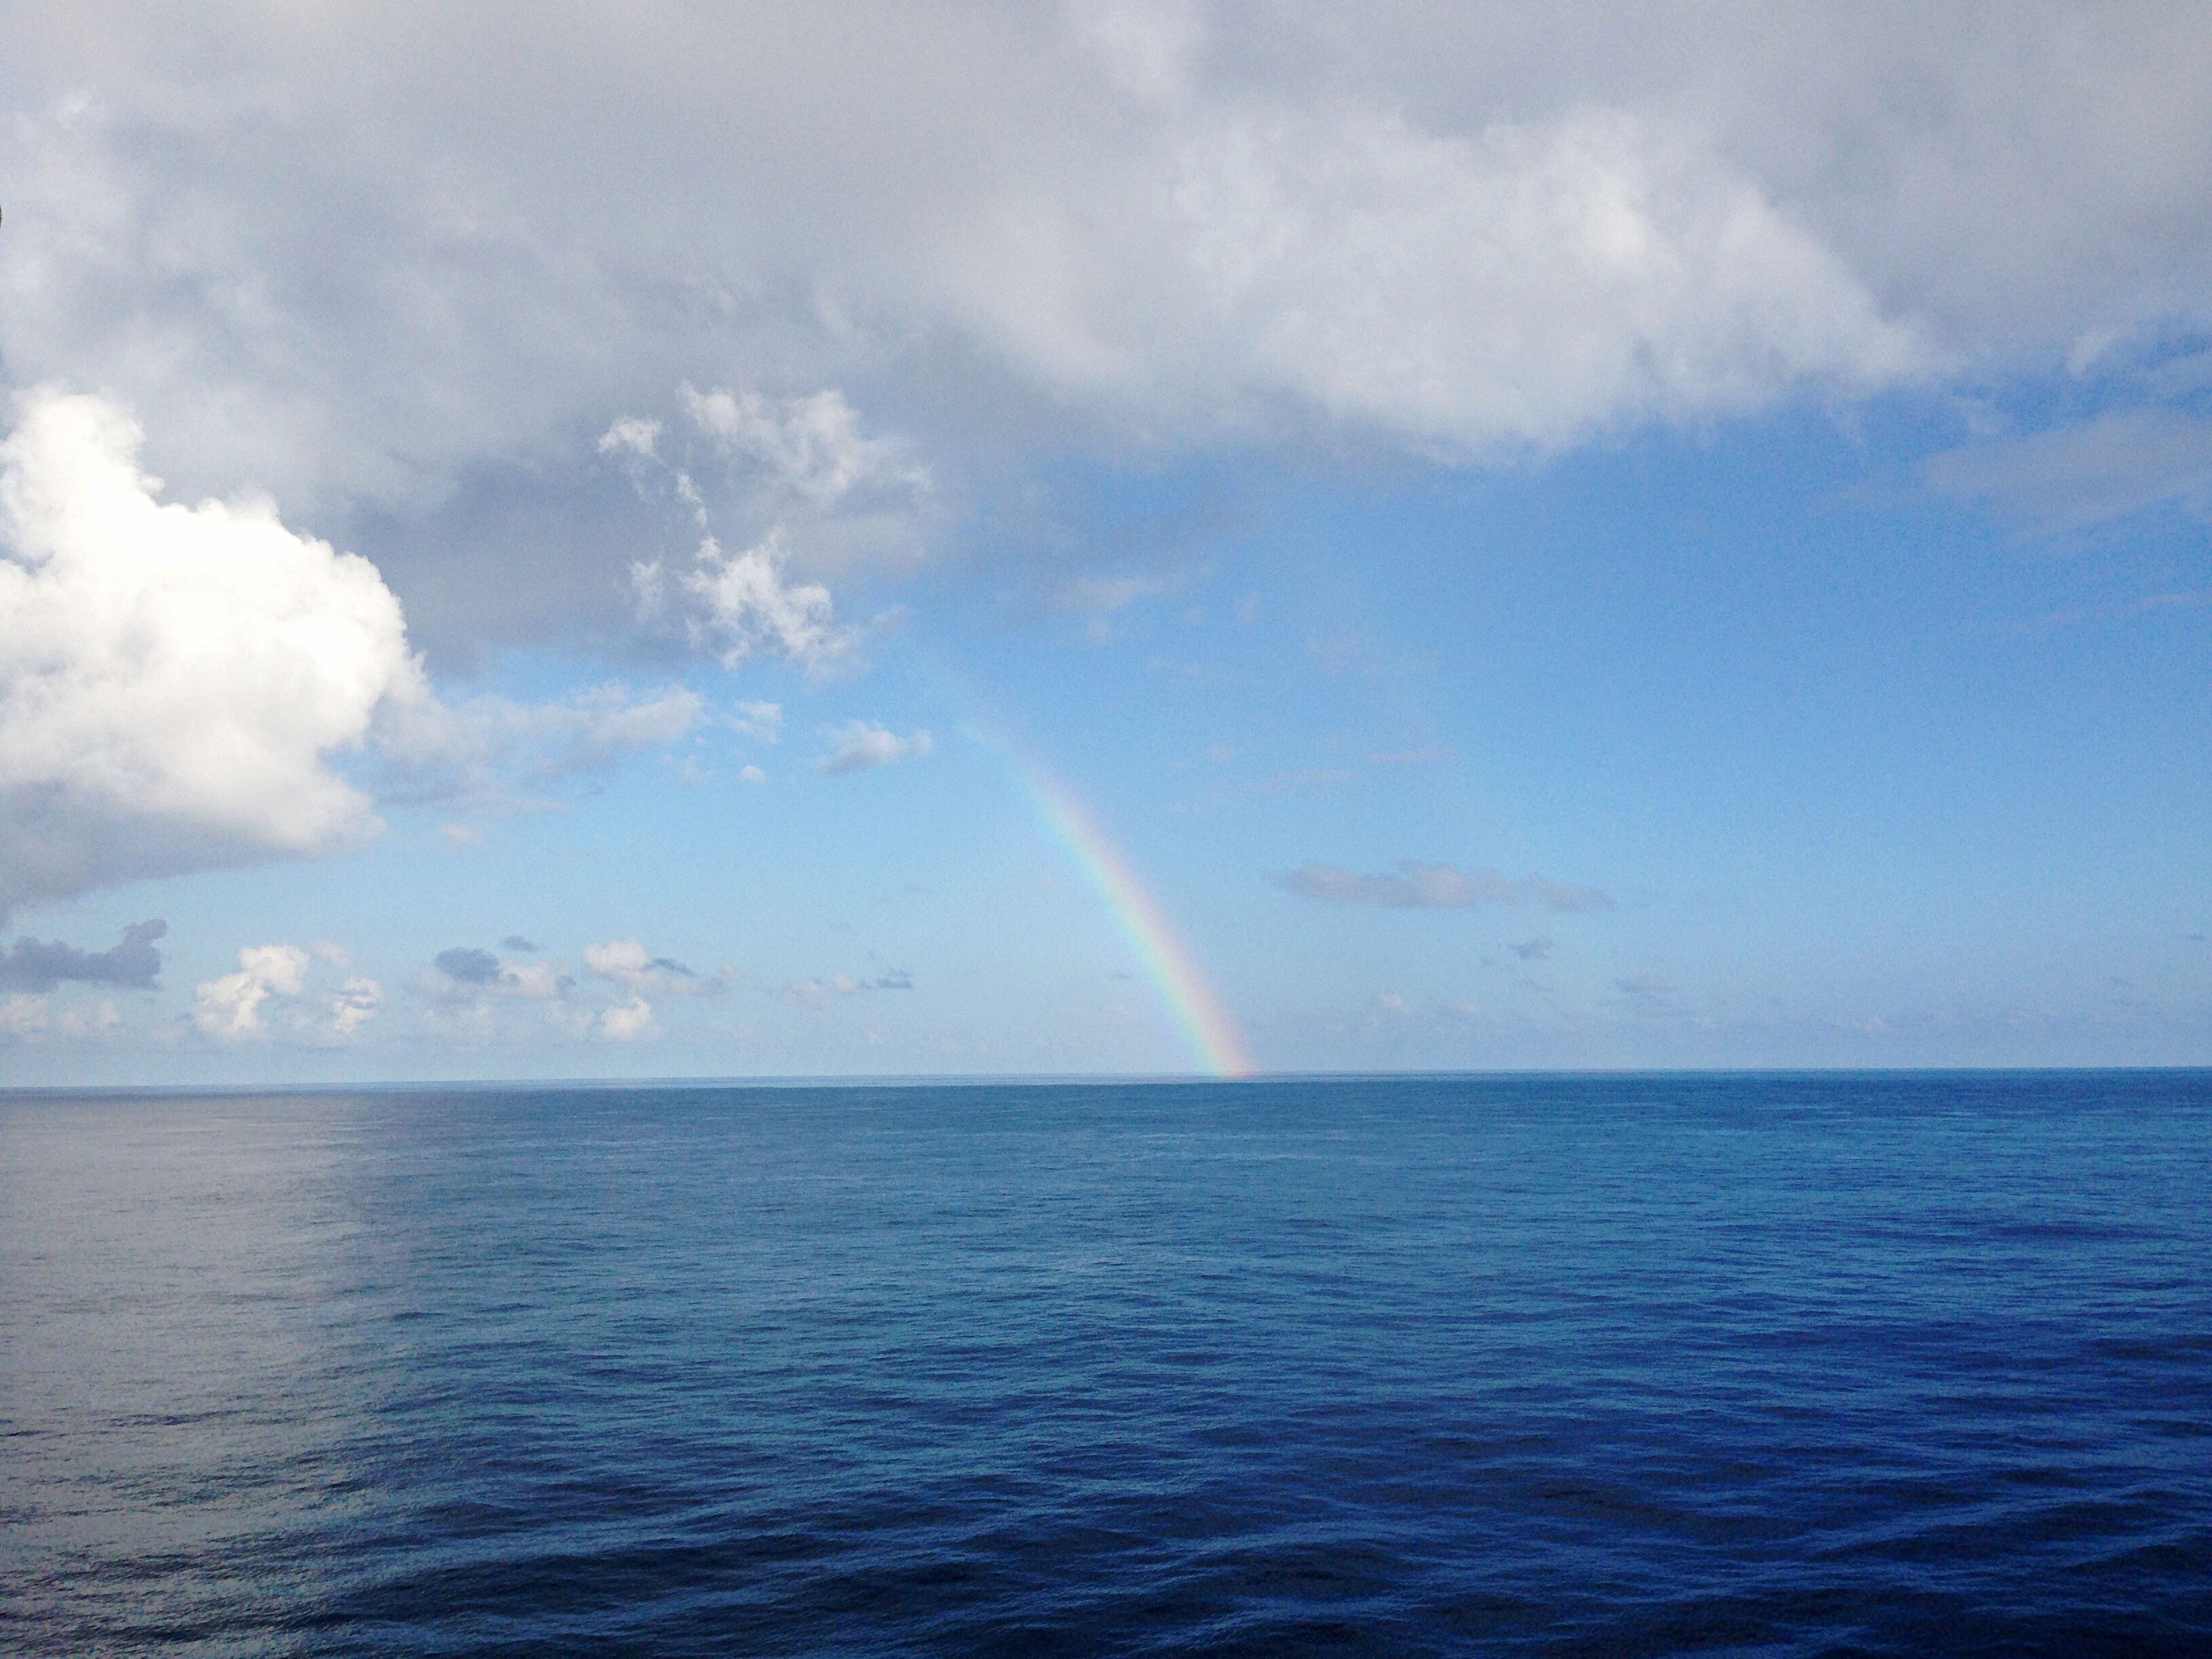 All colors in one place, in the center of Indian ocean